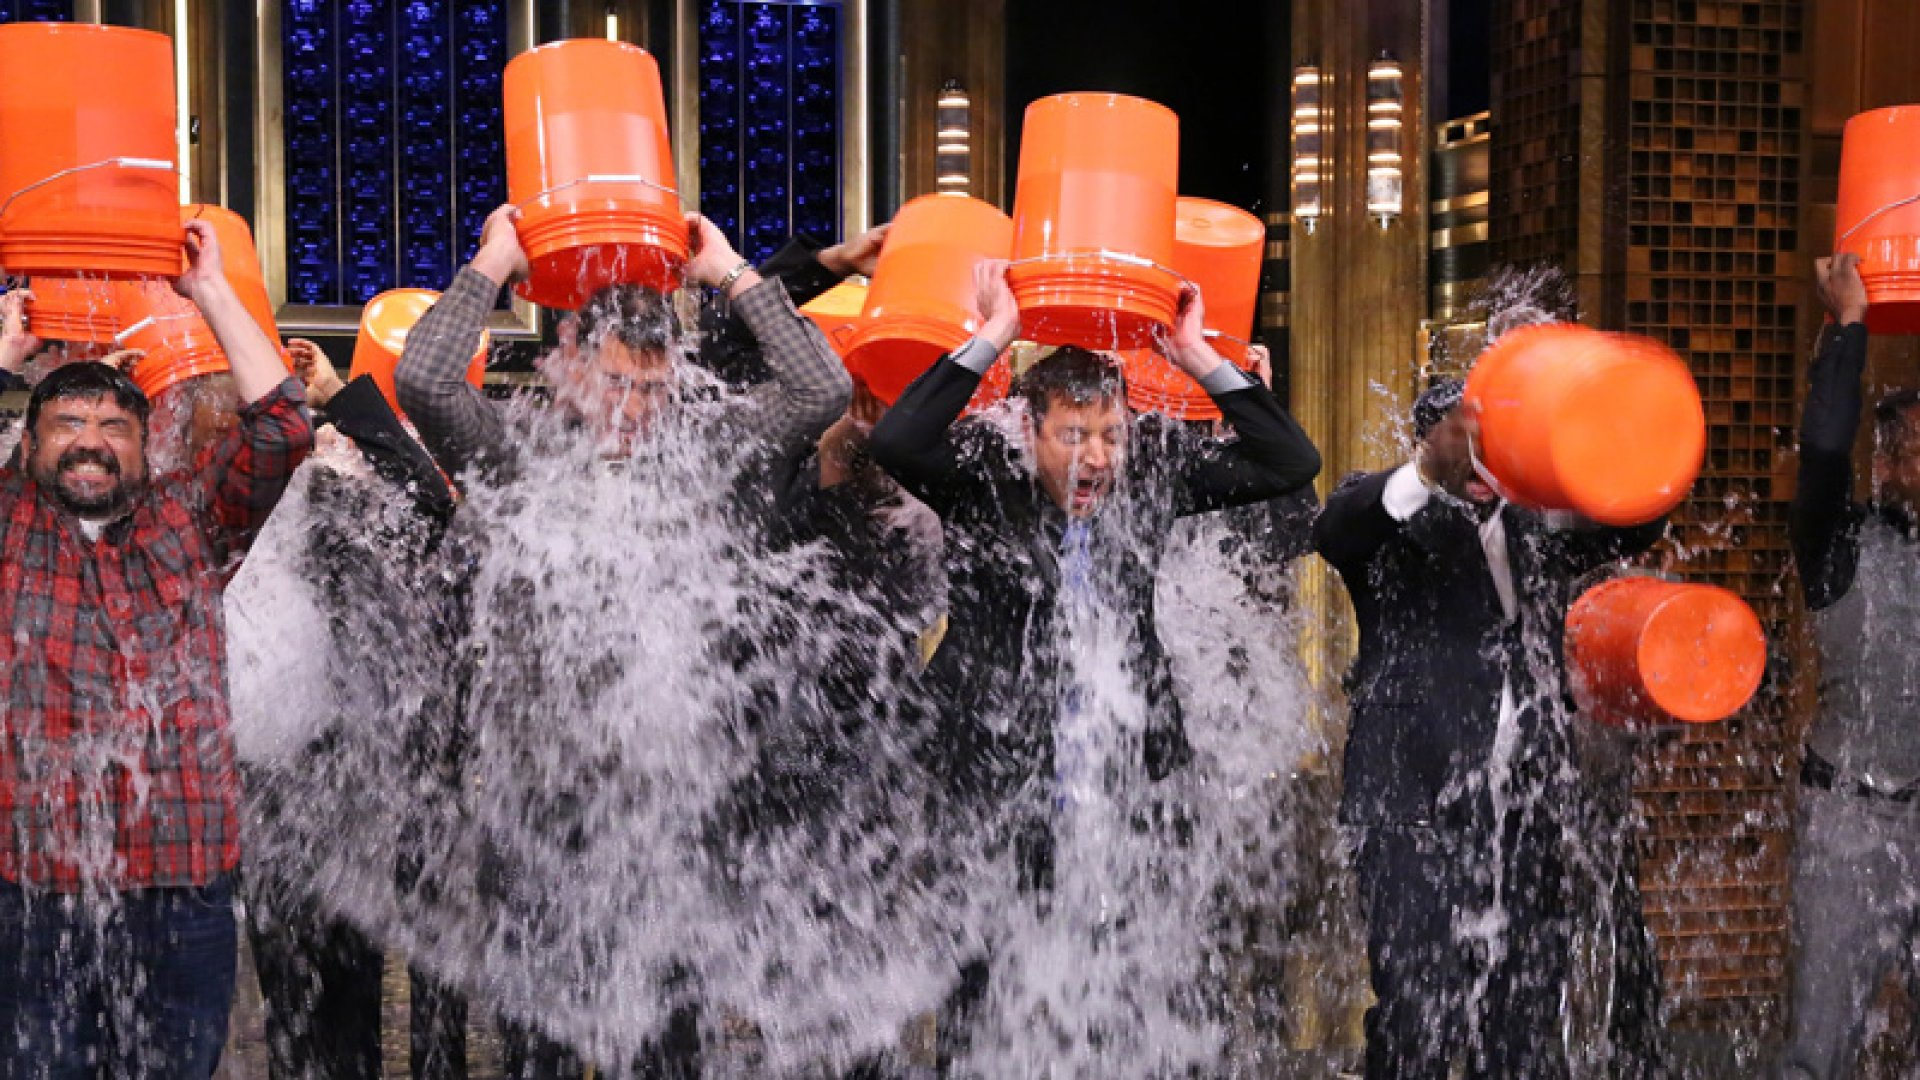 8 Game-Changing Marketing Lessons From the ALS 'Ice Bucket Challenge'